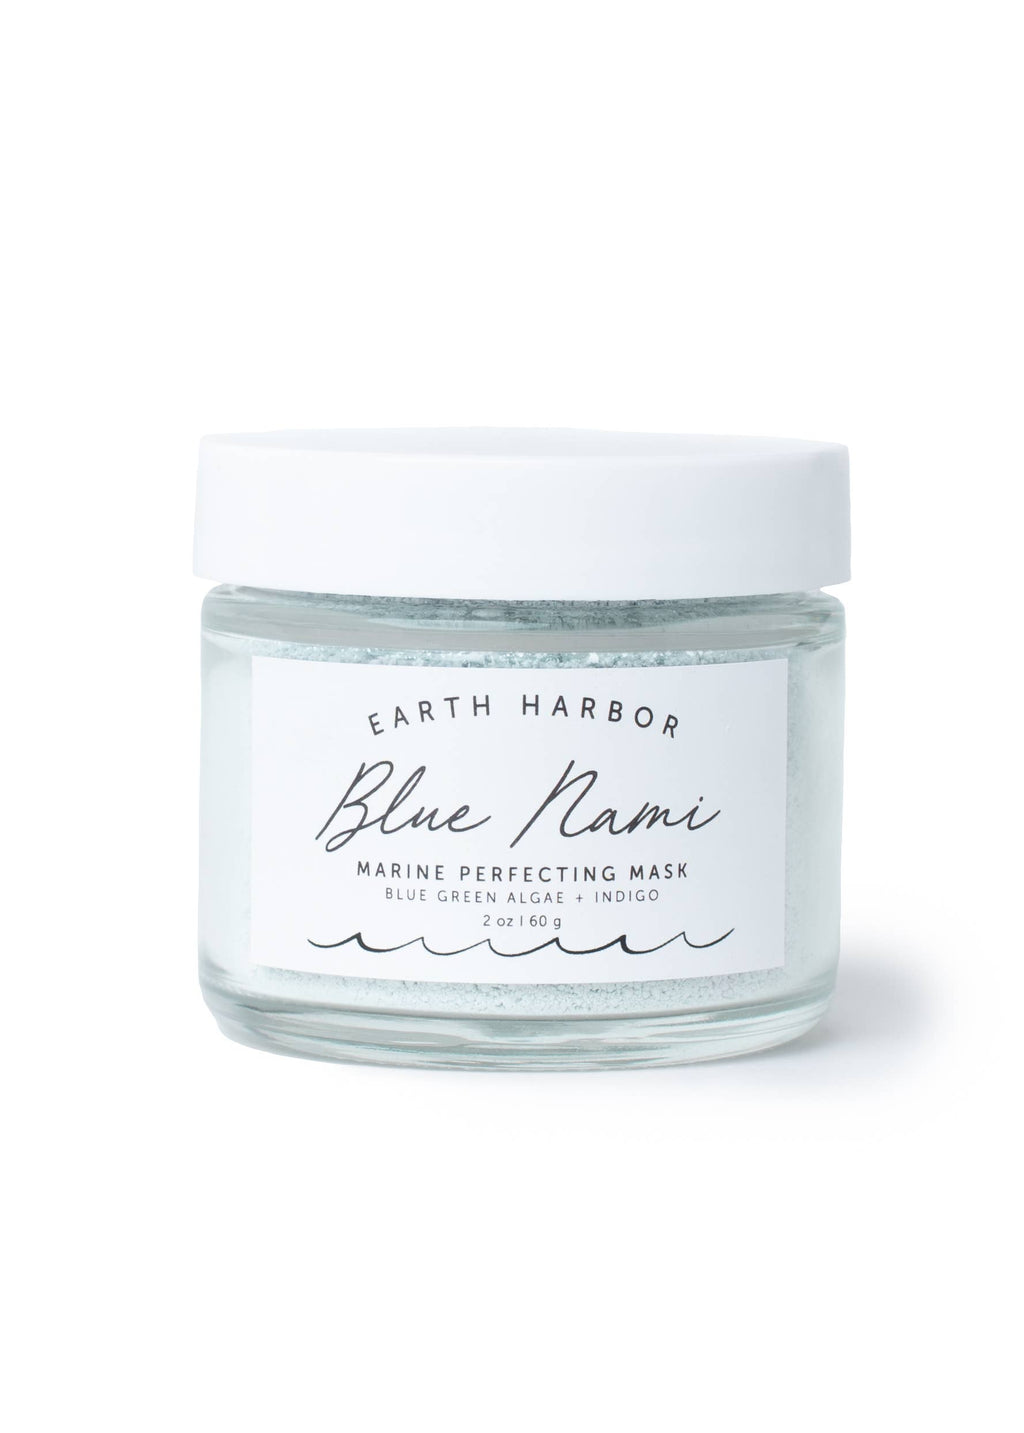 Blue Name Marine Perfecting Mask